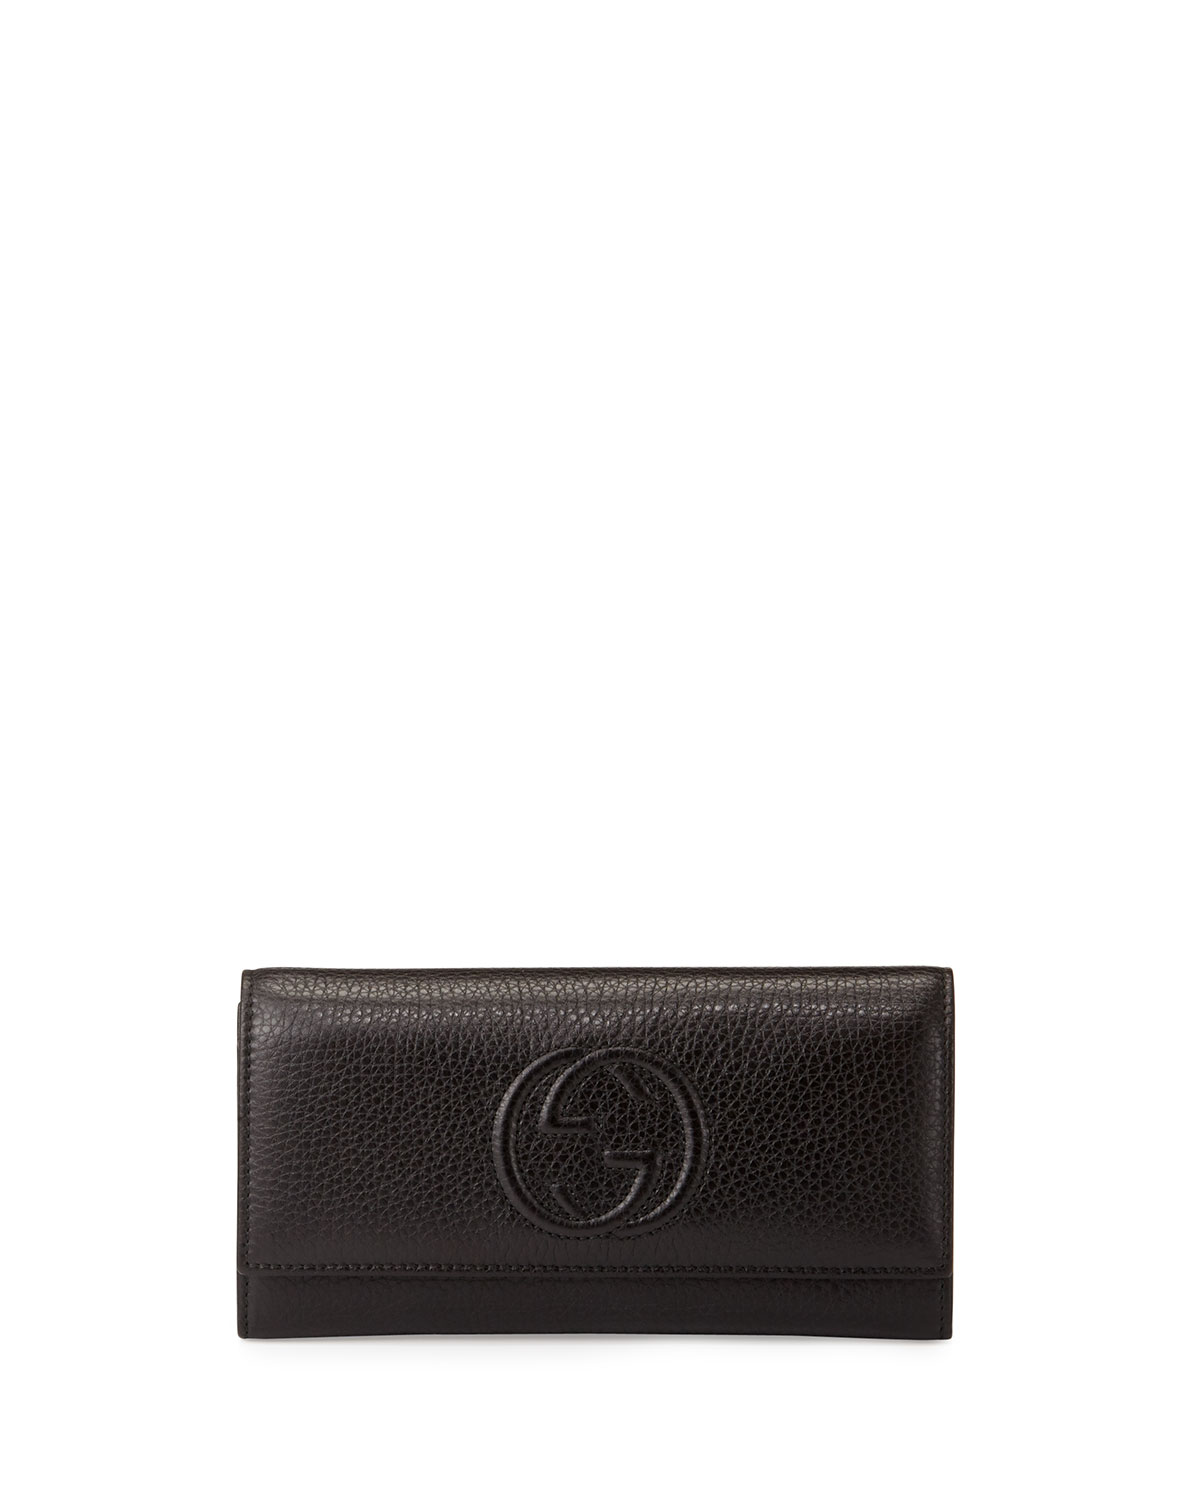 5820a151220 Gucci Soho Leather Continental Wallet Neiman Marcus. Gucci Ophidia Gg  Continental Wallet At 1stdibs